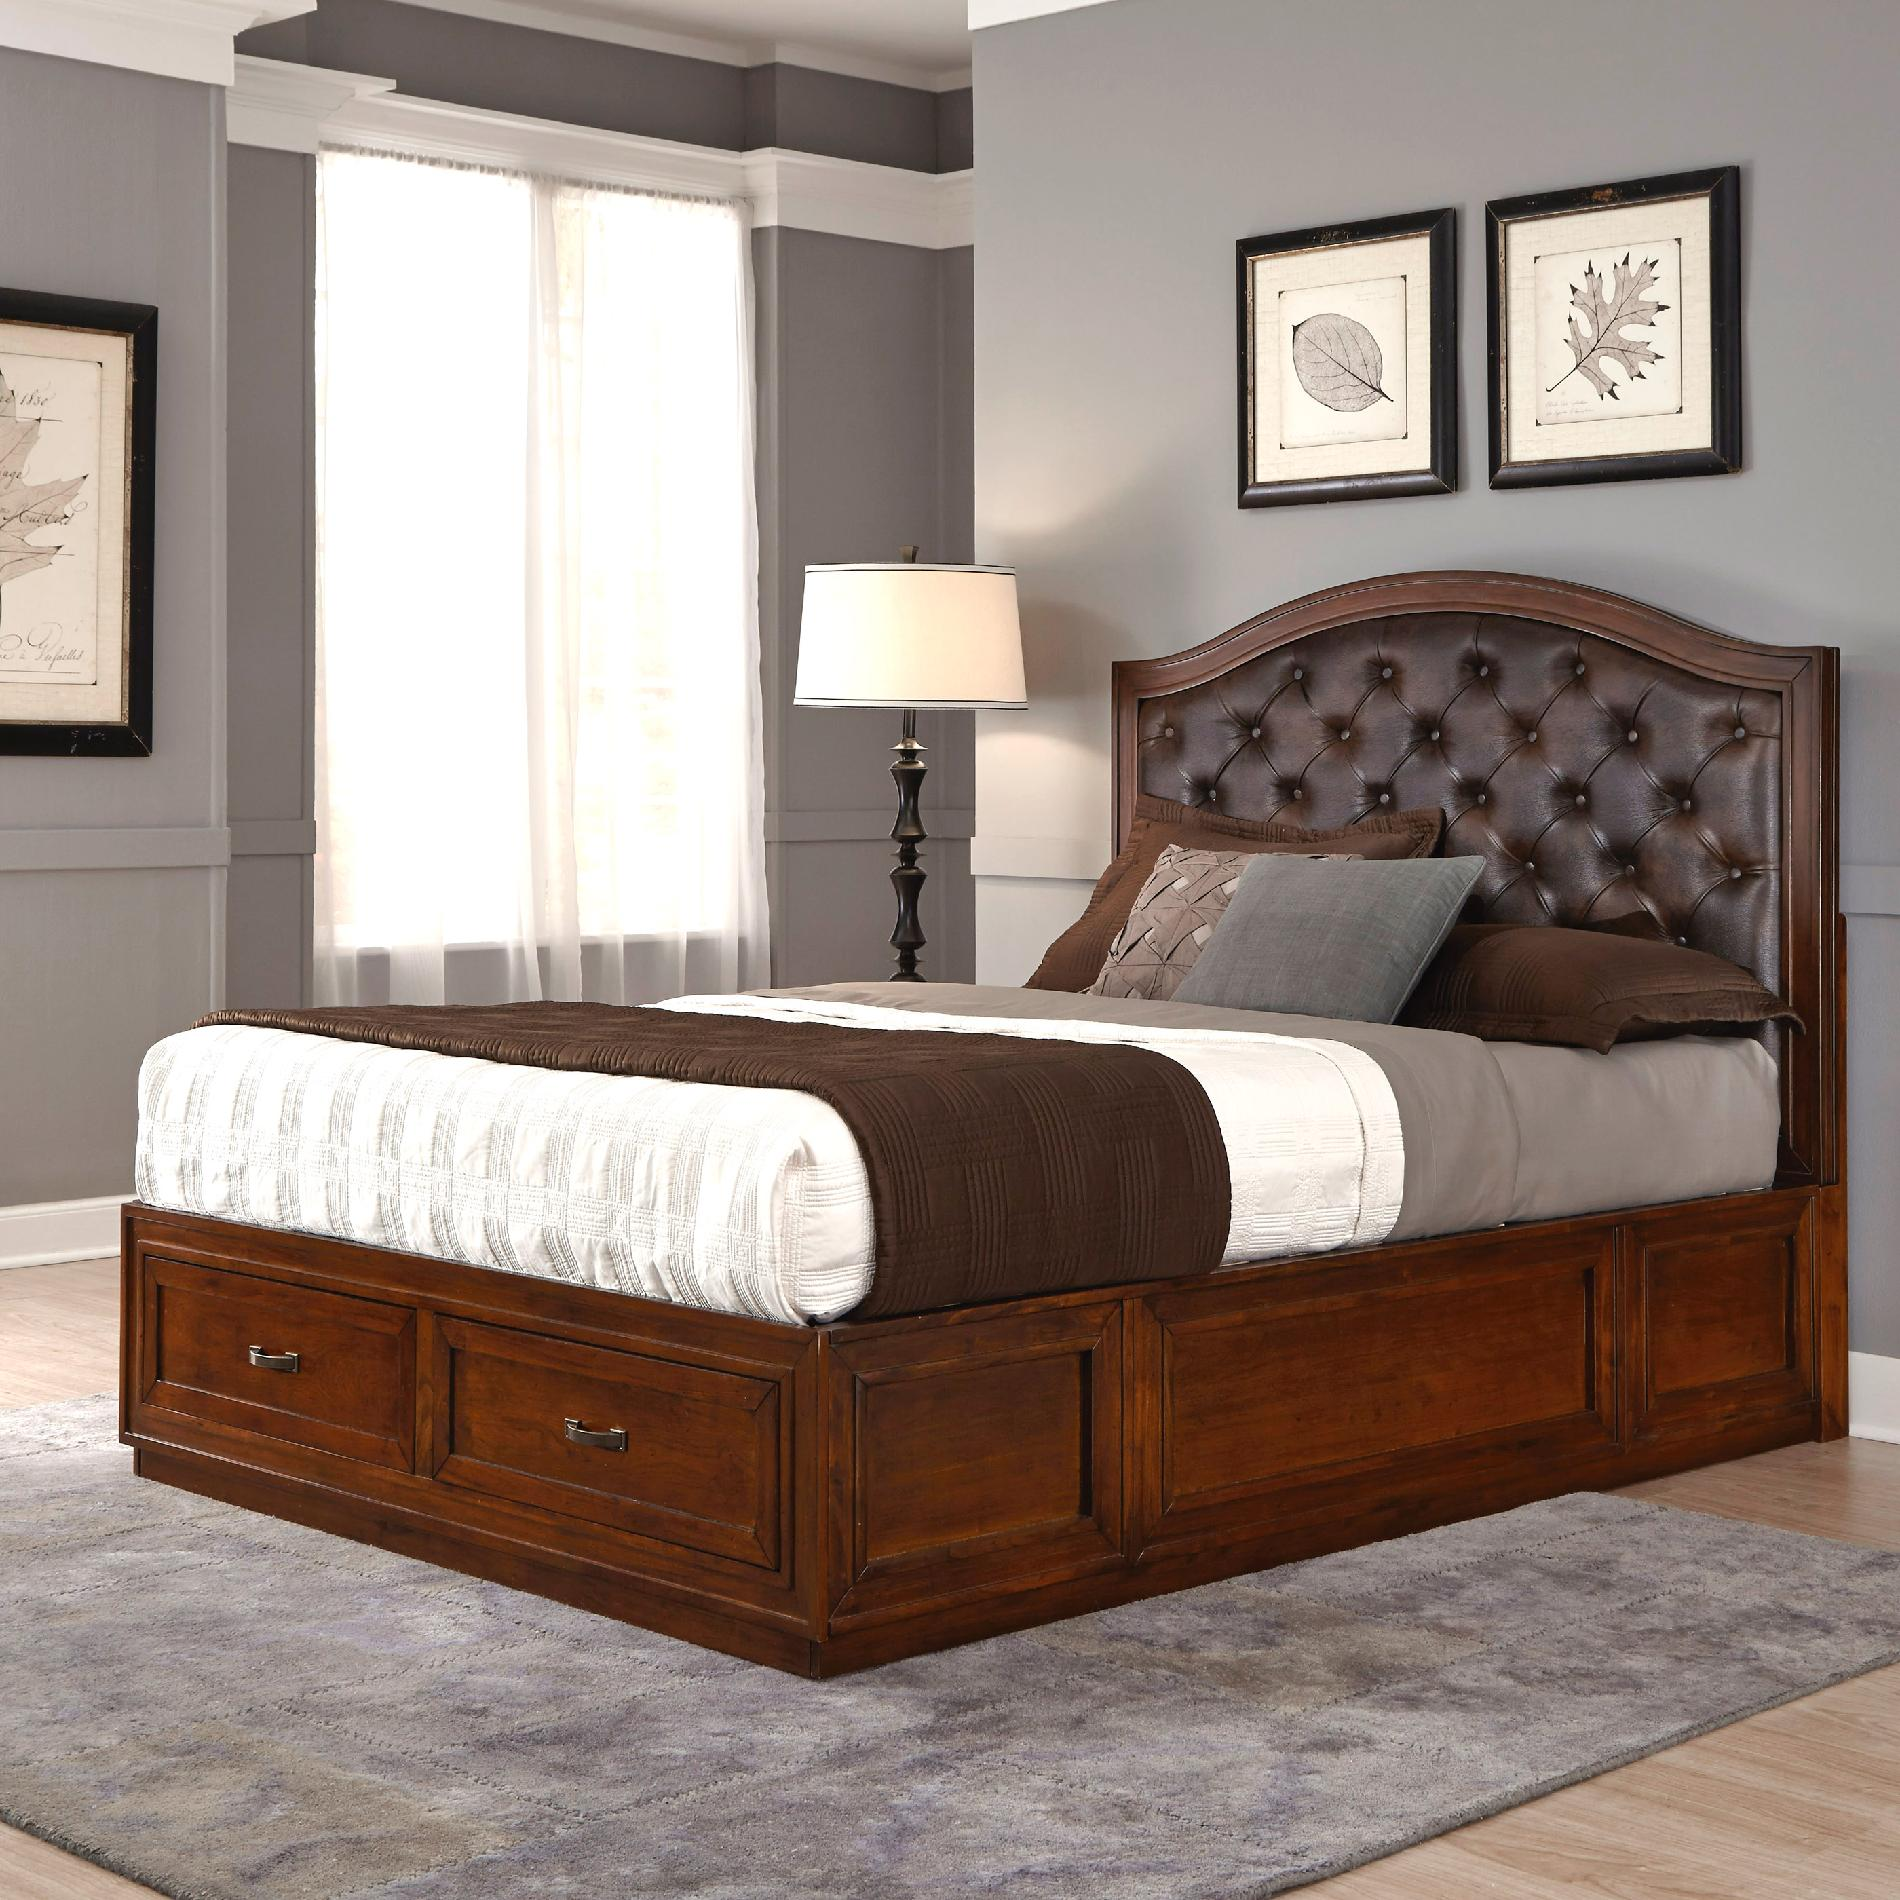 Home Styles Duet Queen Tufted Diamond Camelback Bed Brown